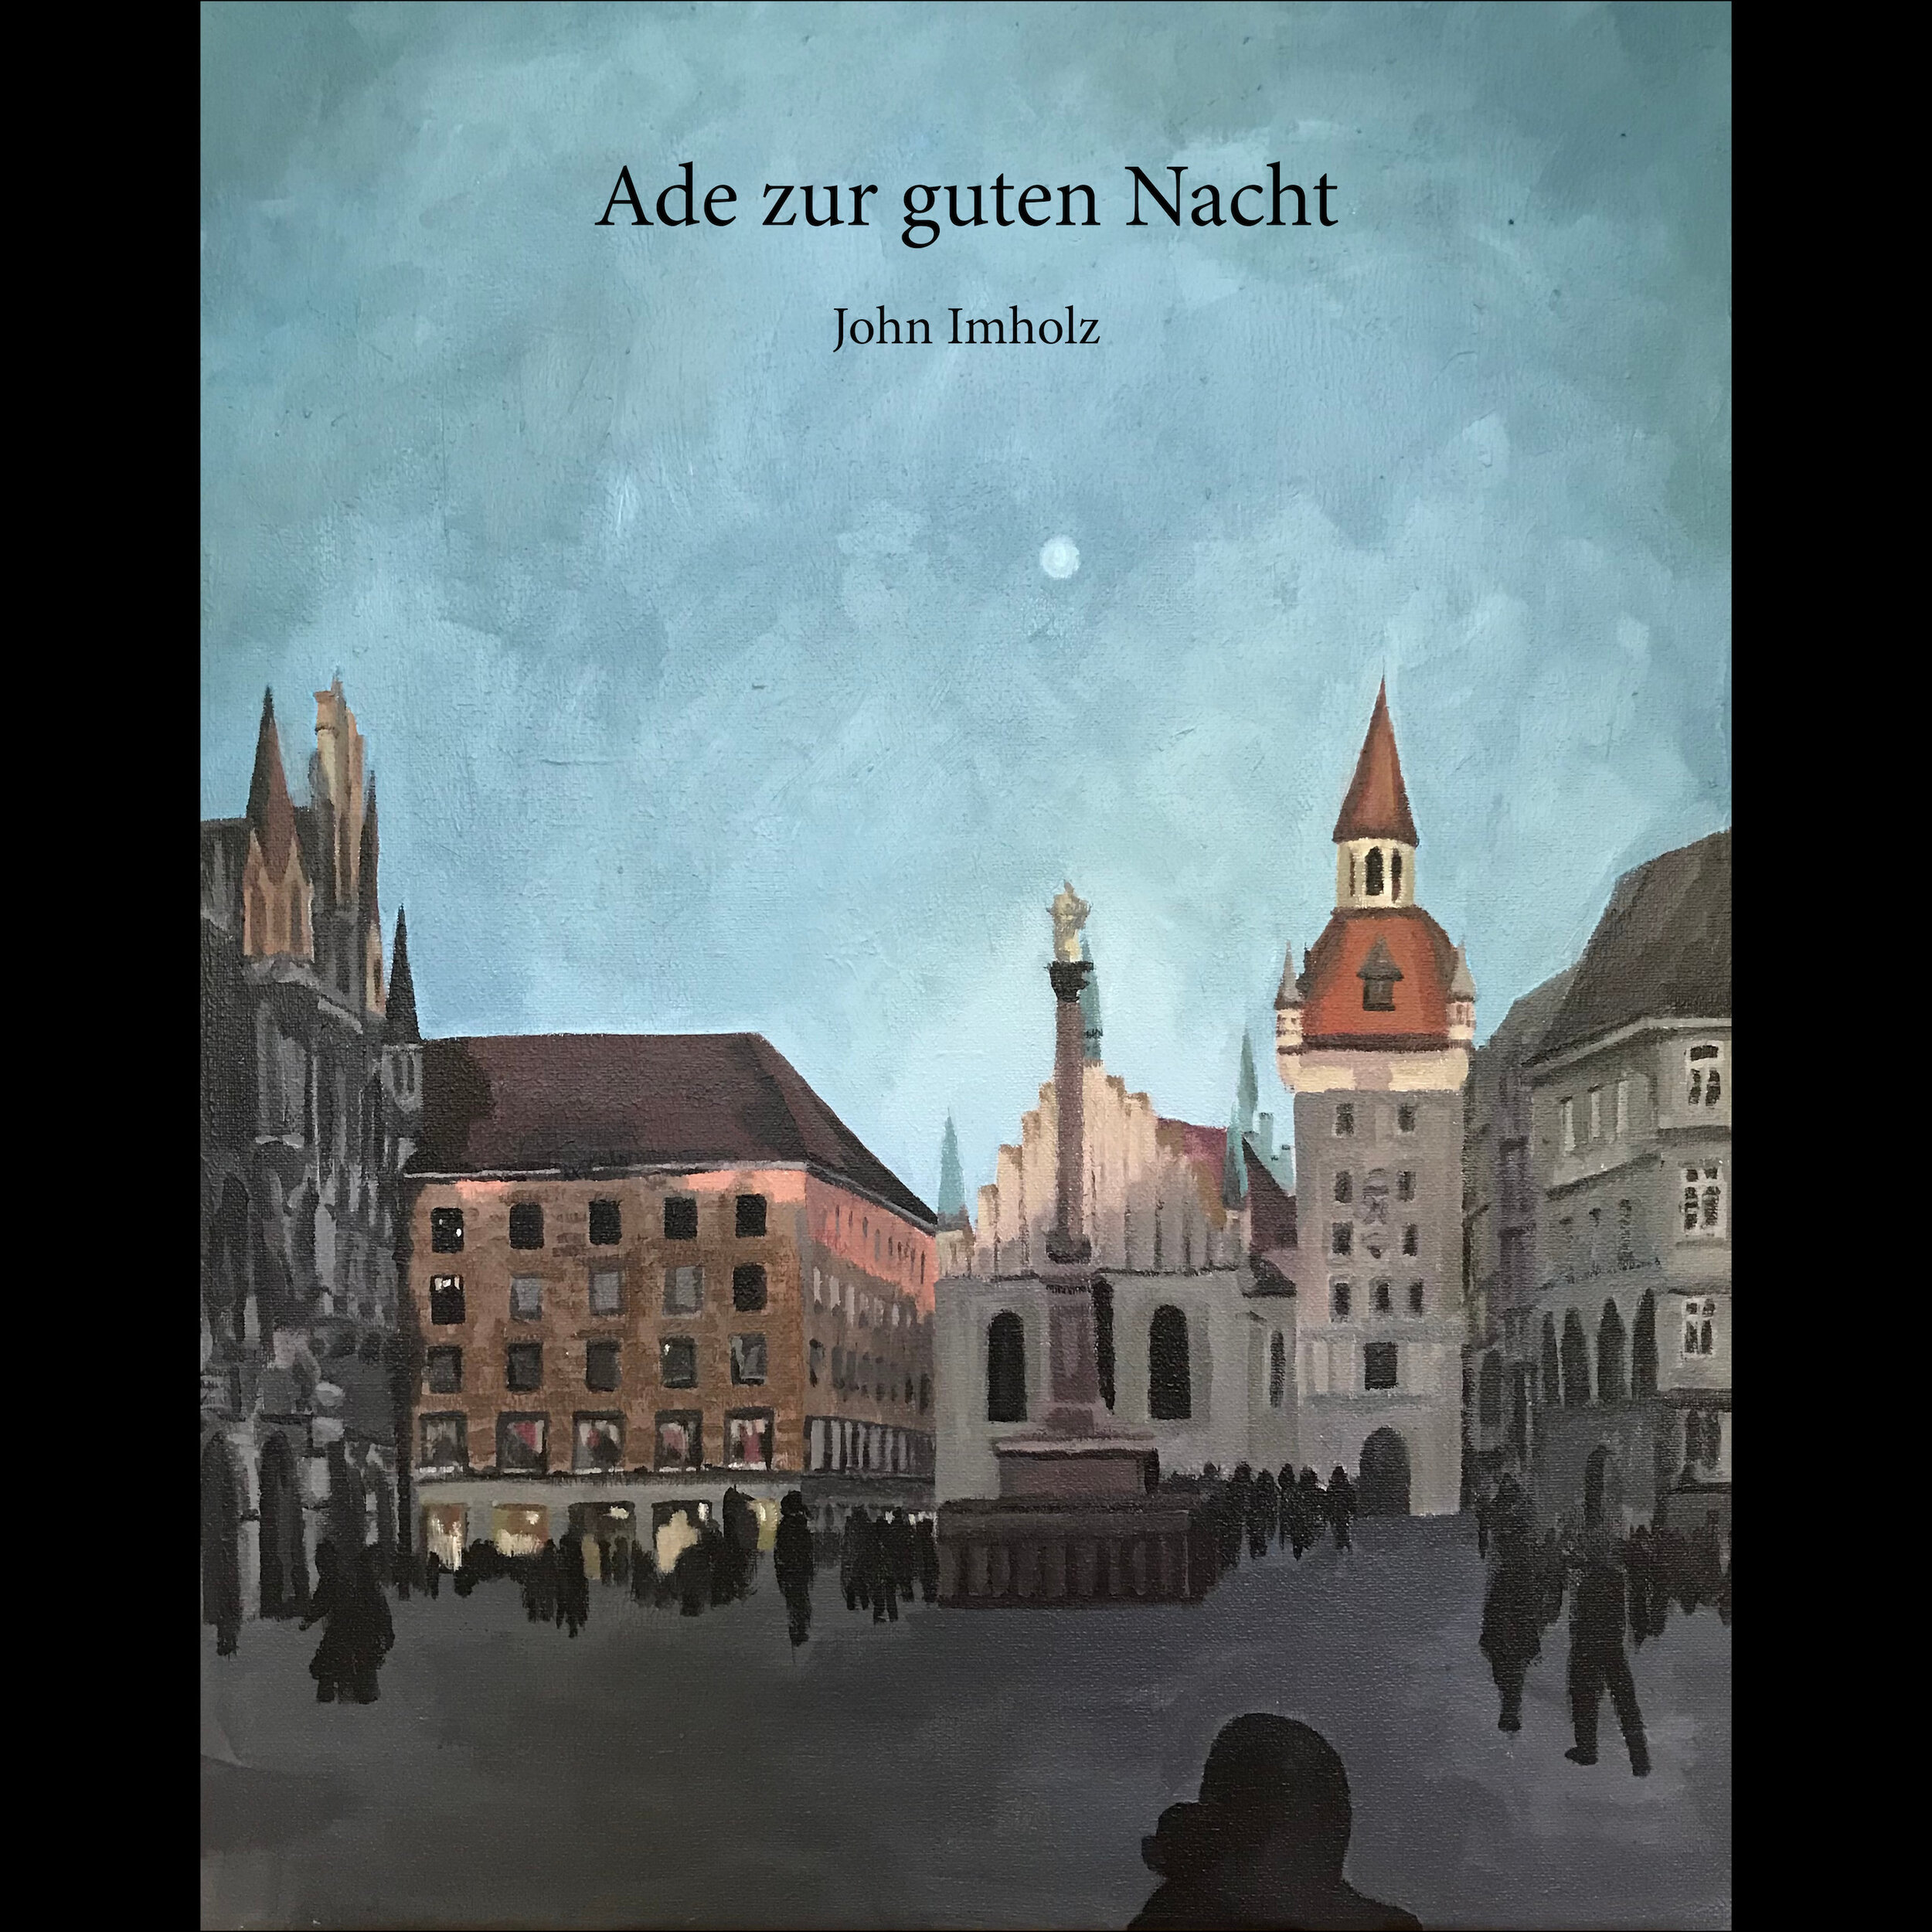 Ade zur guten Nacht is a German lullaby that first appeared in the early 19th century. The composer and lyricist are unknown; the song appears in songbooks from the German states of Sachsen, Rheinpfalz, Thüringen, and other parts of the Franken region.     Daniel Cilli - vocals  Miriam Perkoff - cello  John Imholz - guitar and mandolin  John Cuniberti - mastering  Artwork: Marienplatz - 17 April 2019, by Fanya Sandrine Imholz     This song was recorded and mastered in Oakland, California. I did the editing and mixing in Erfurt and München, Germany.